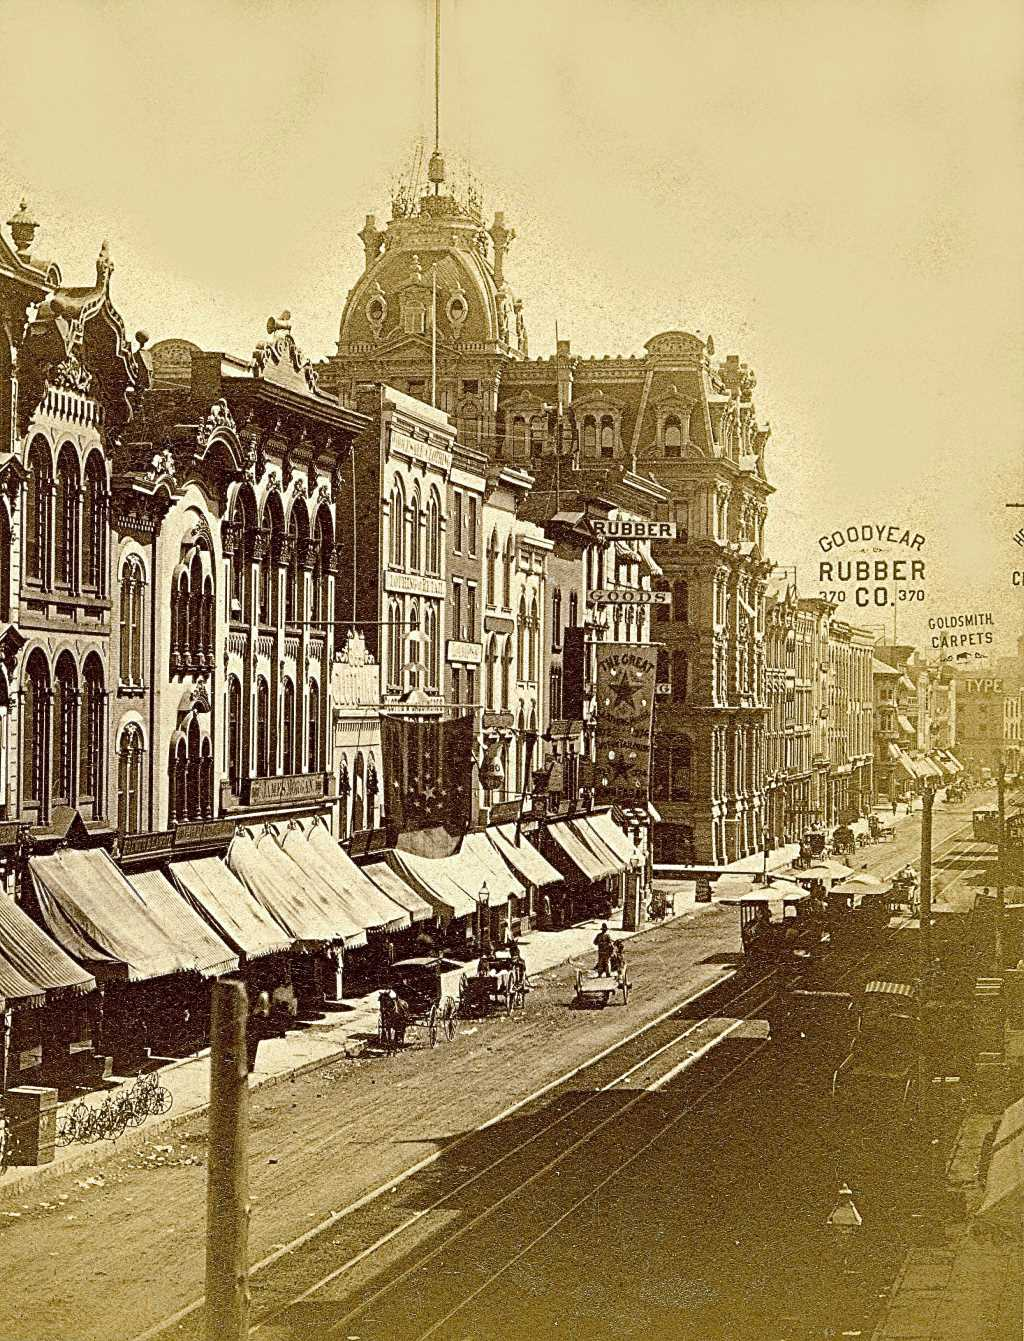 Water Street in 1880. Image courtesy of Jeff Beutner.